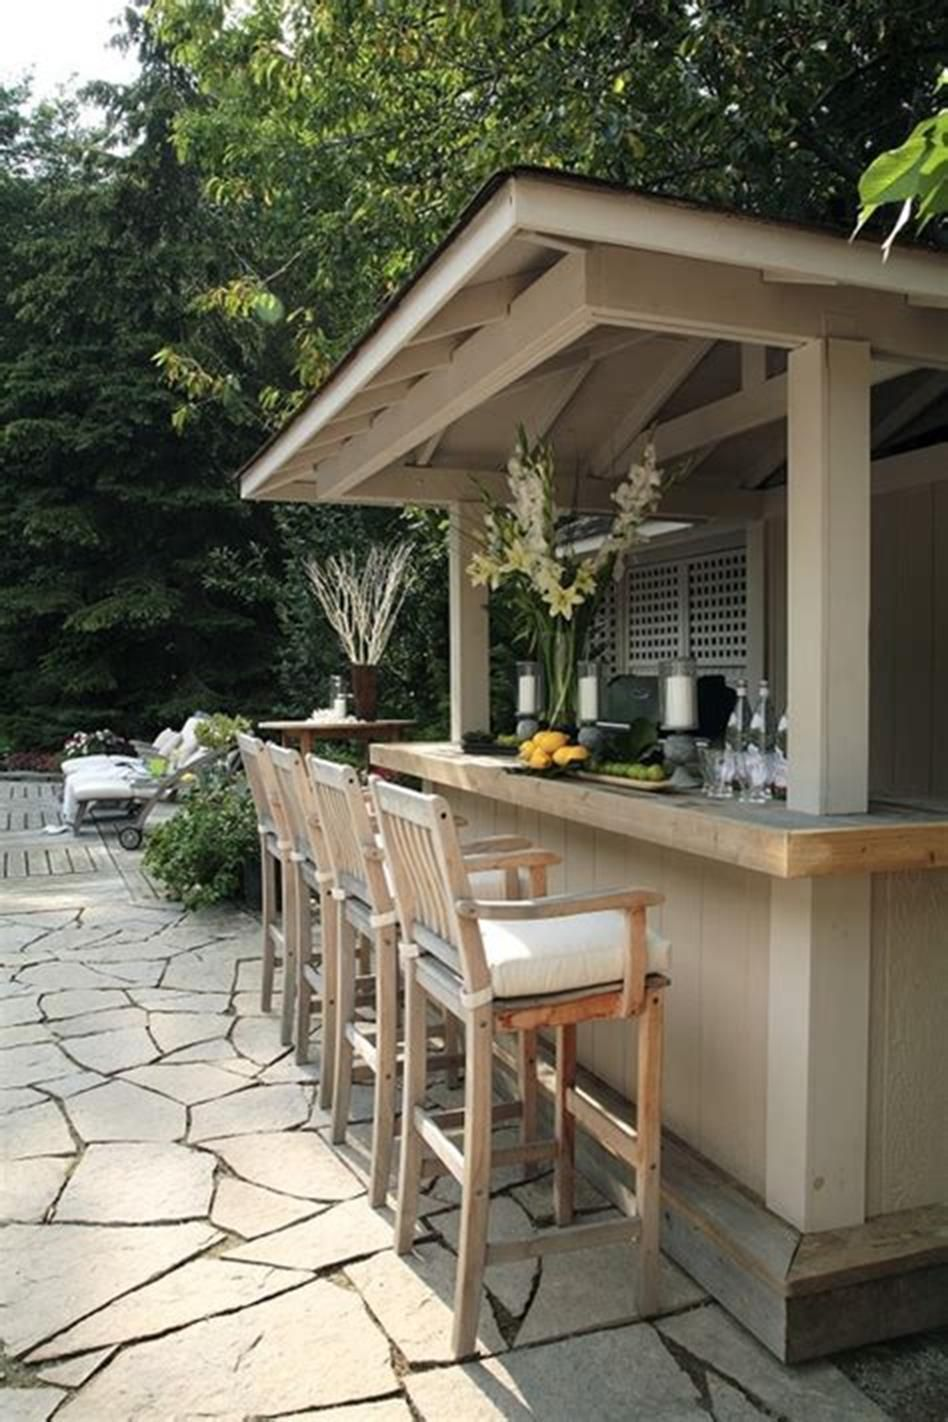 35 Amazing Small Covered Outdoor BBQ Ideas for 2019 ... on Patio With Bar Ideas id=33599